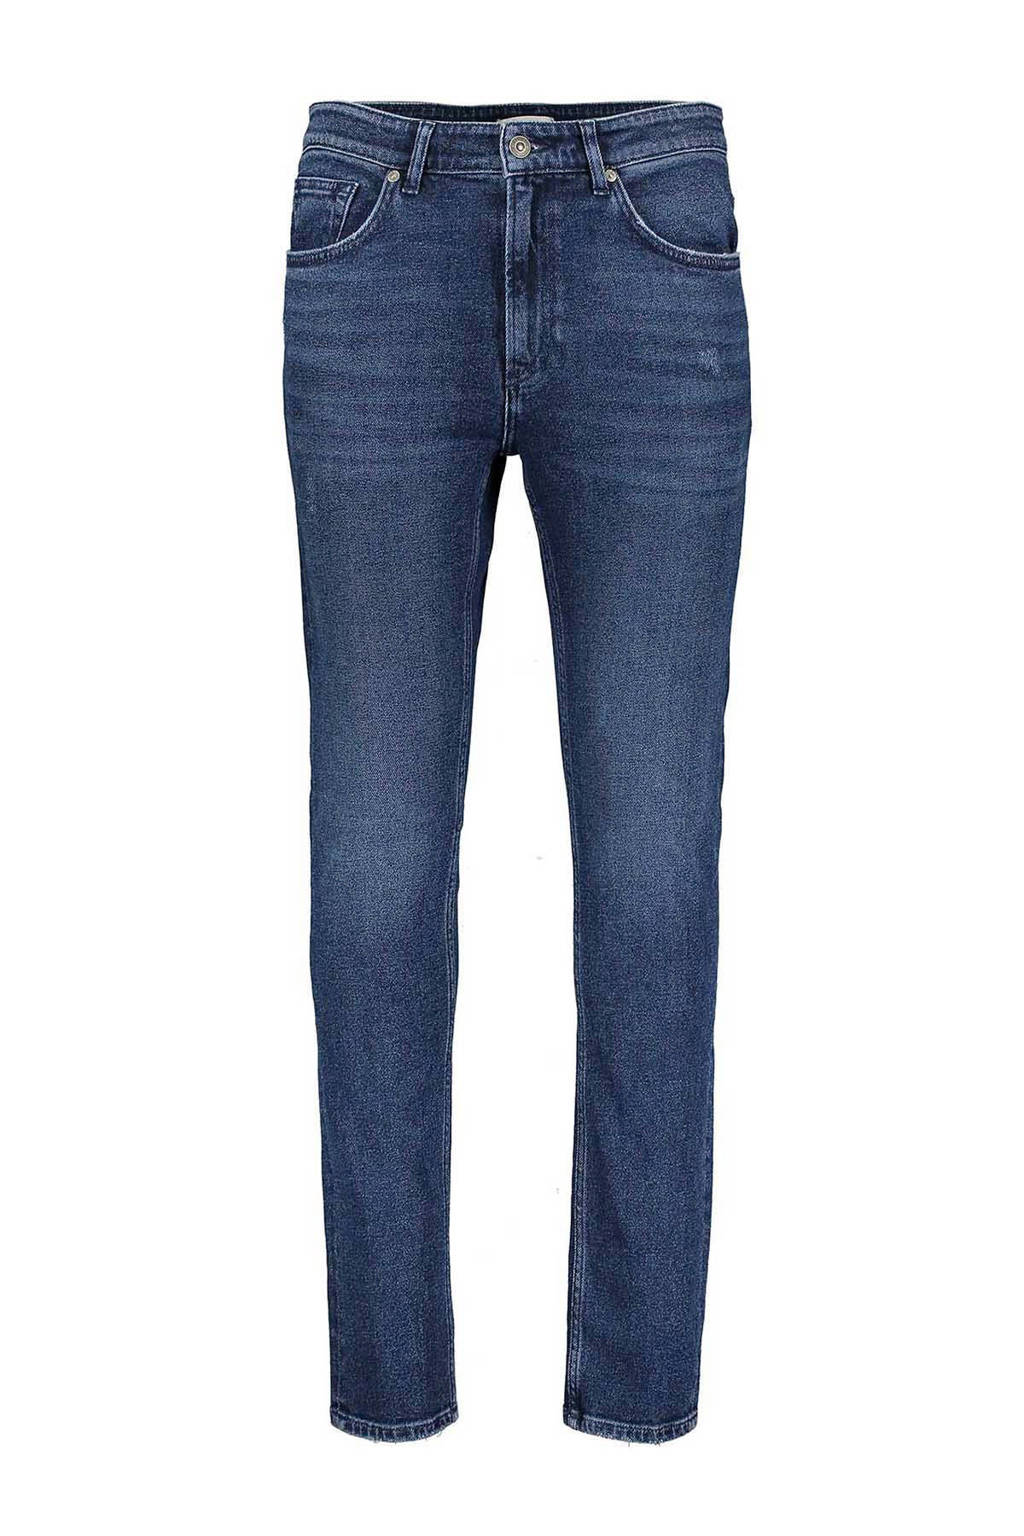 Sissy-Boy slim fit jeans, Dark denim